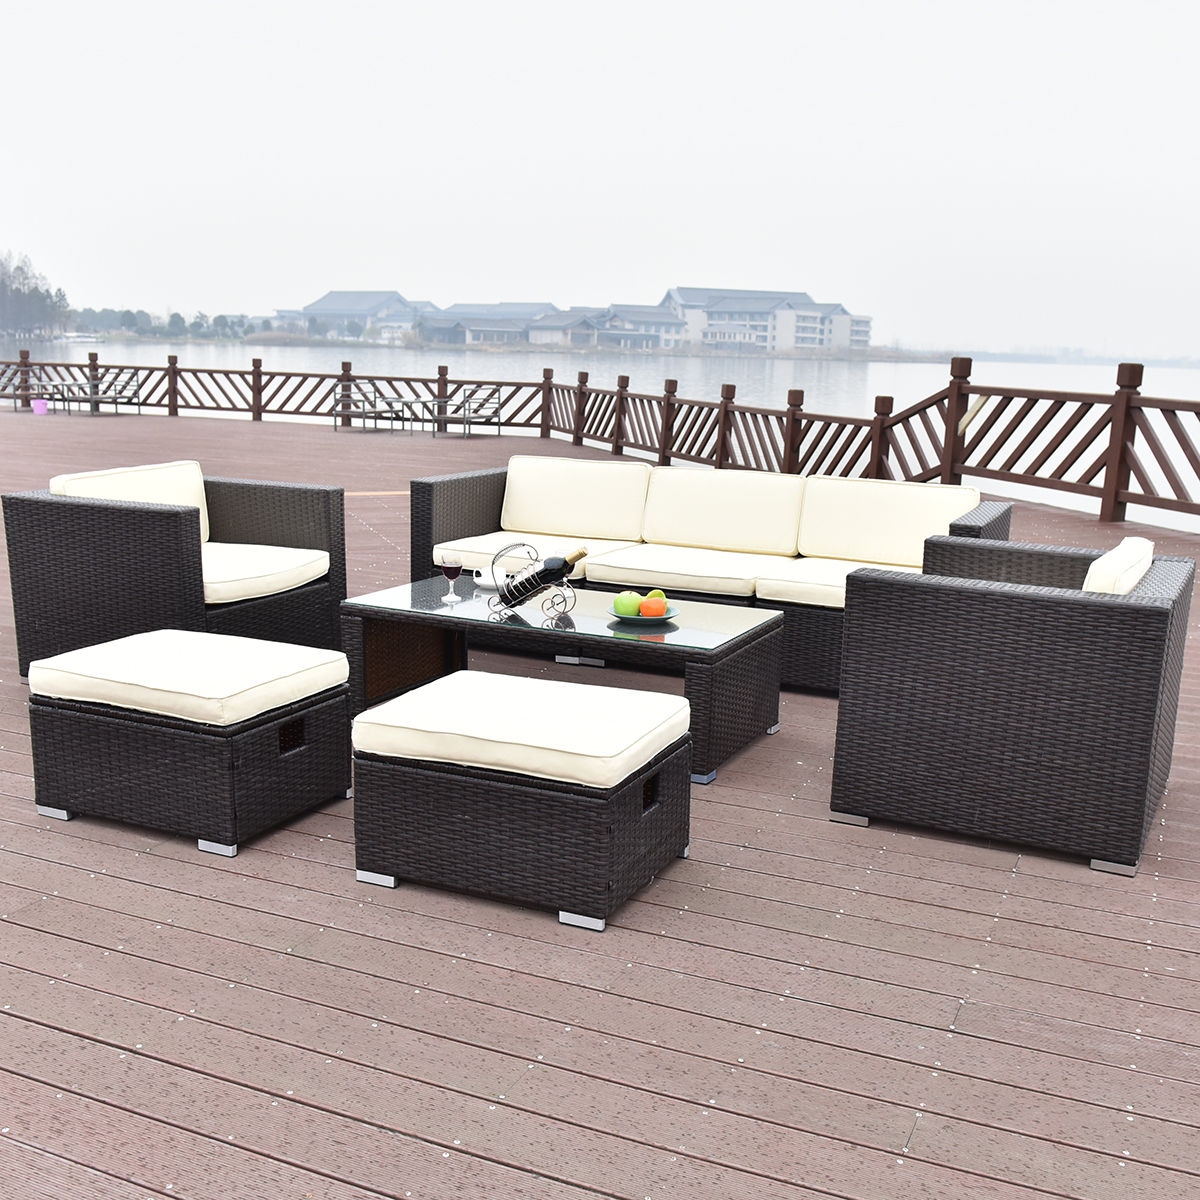 Rattan Sofa Corner Set Costway 8 Pcs Outdoor Patio Rattan Wicker Furniture Set Sofa Cushioned Garden Brown